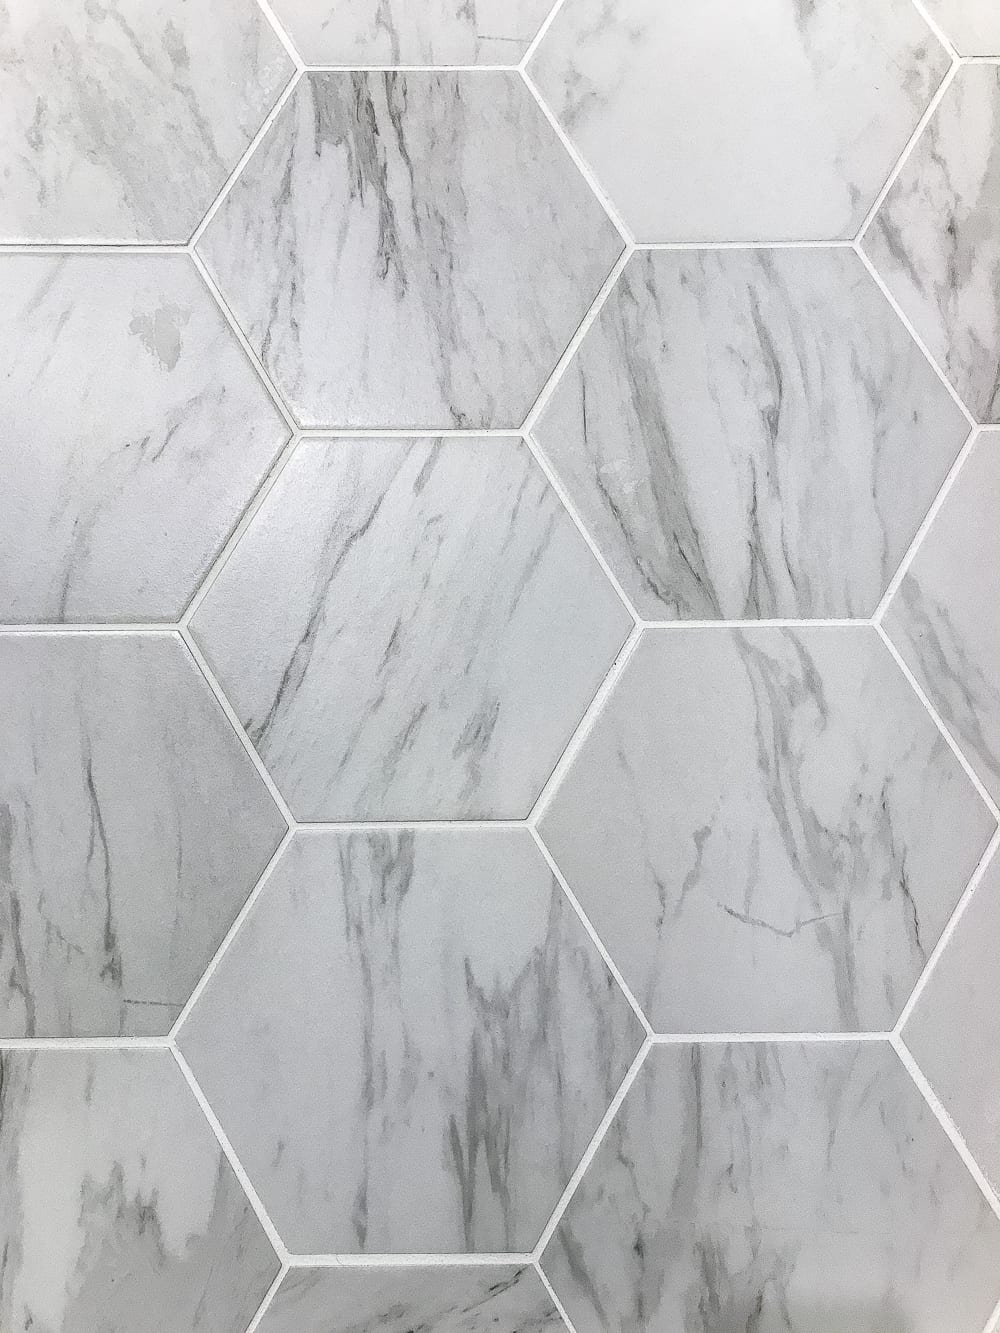 Powder room makeover faux marble tile floor blesser house the best faux marble tile blesserhouse a dated powder room floor gets dailygadgetfo Choice Image